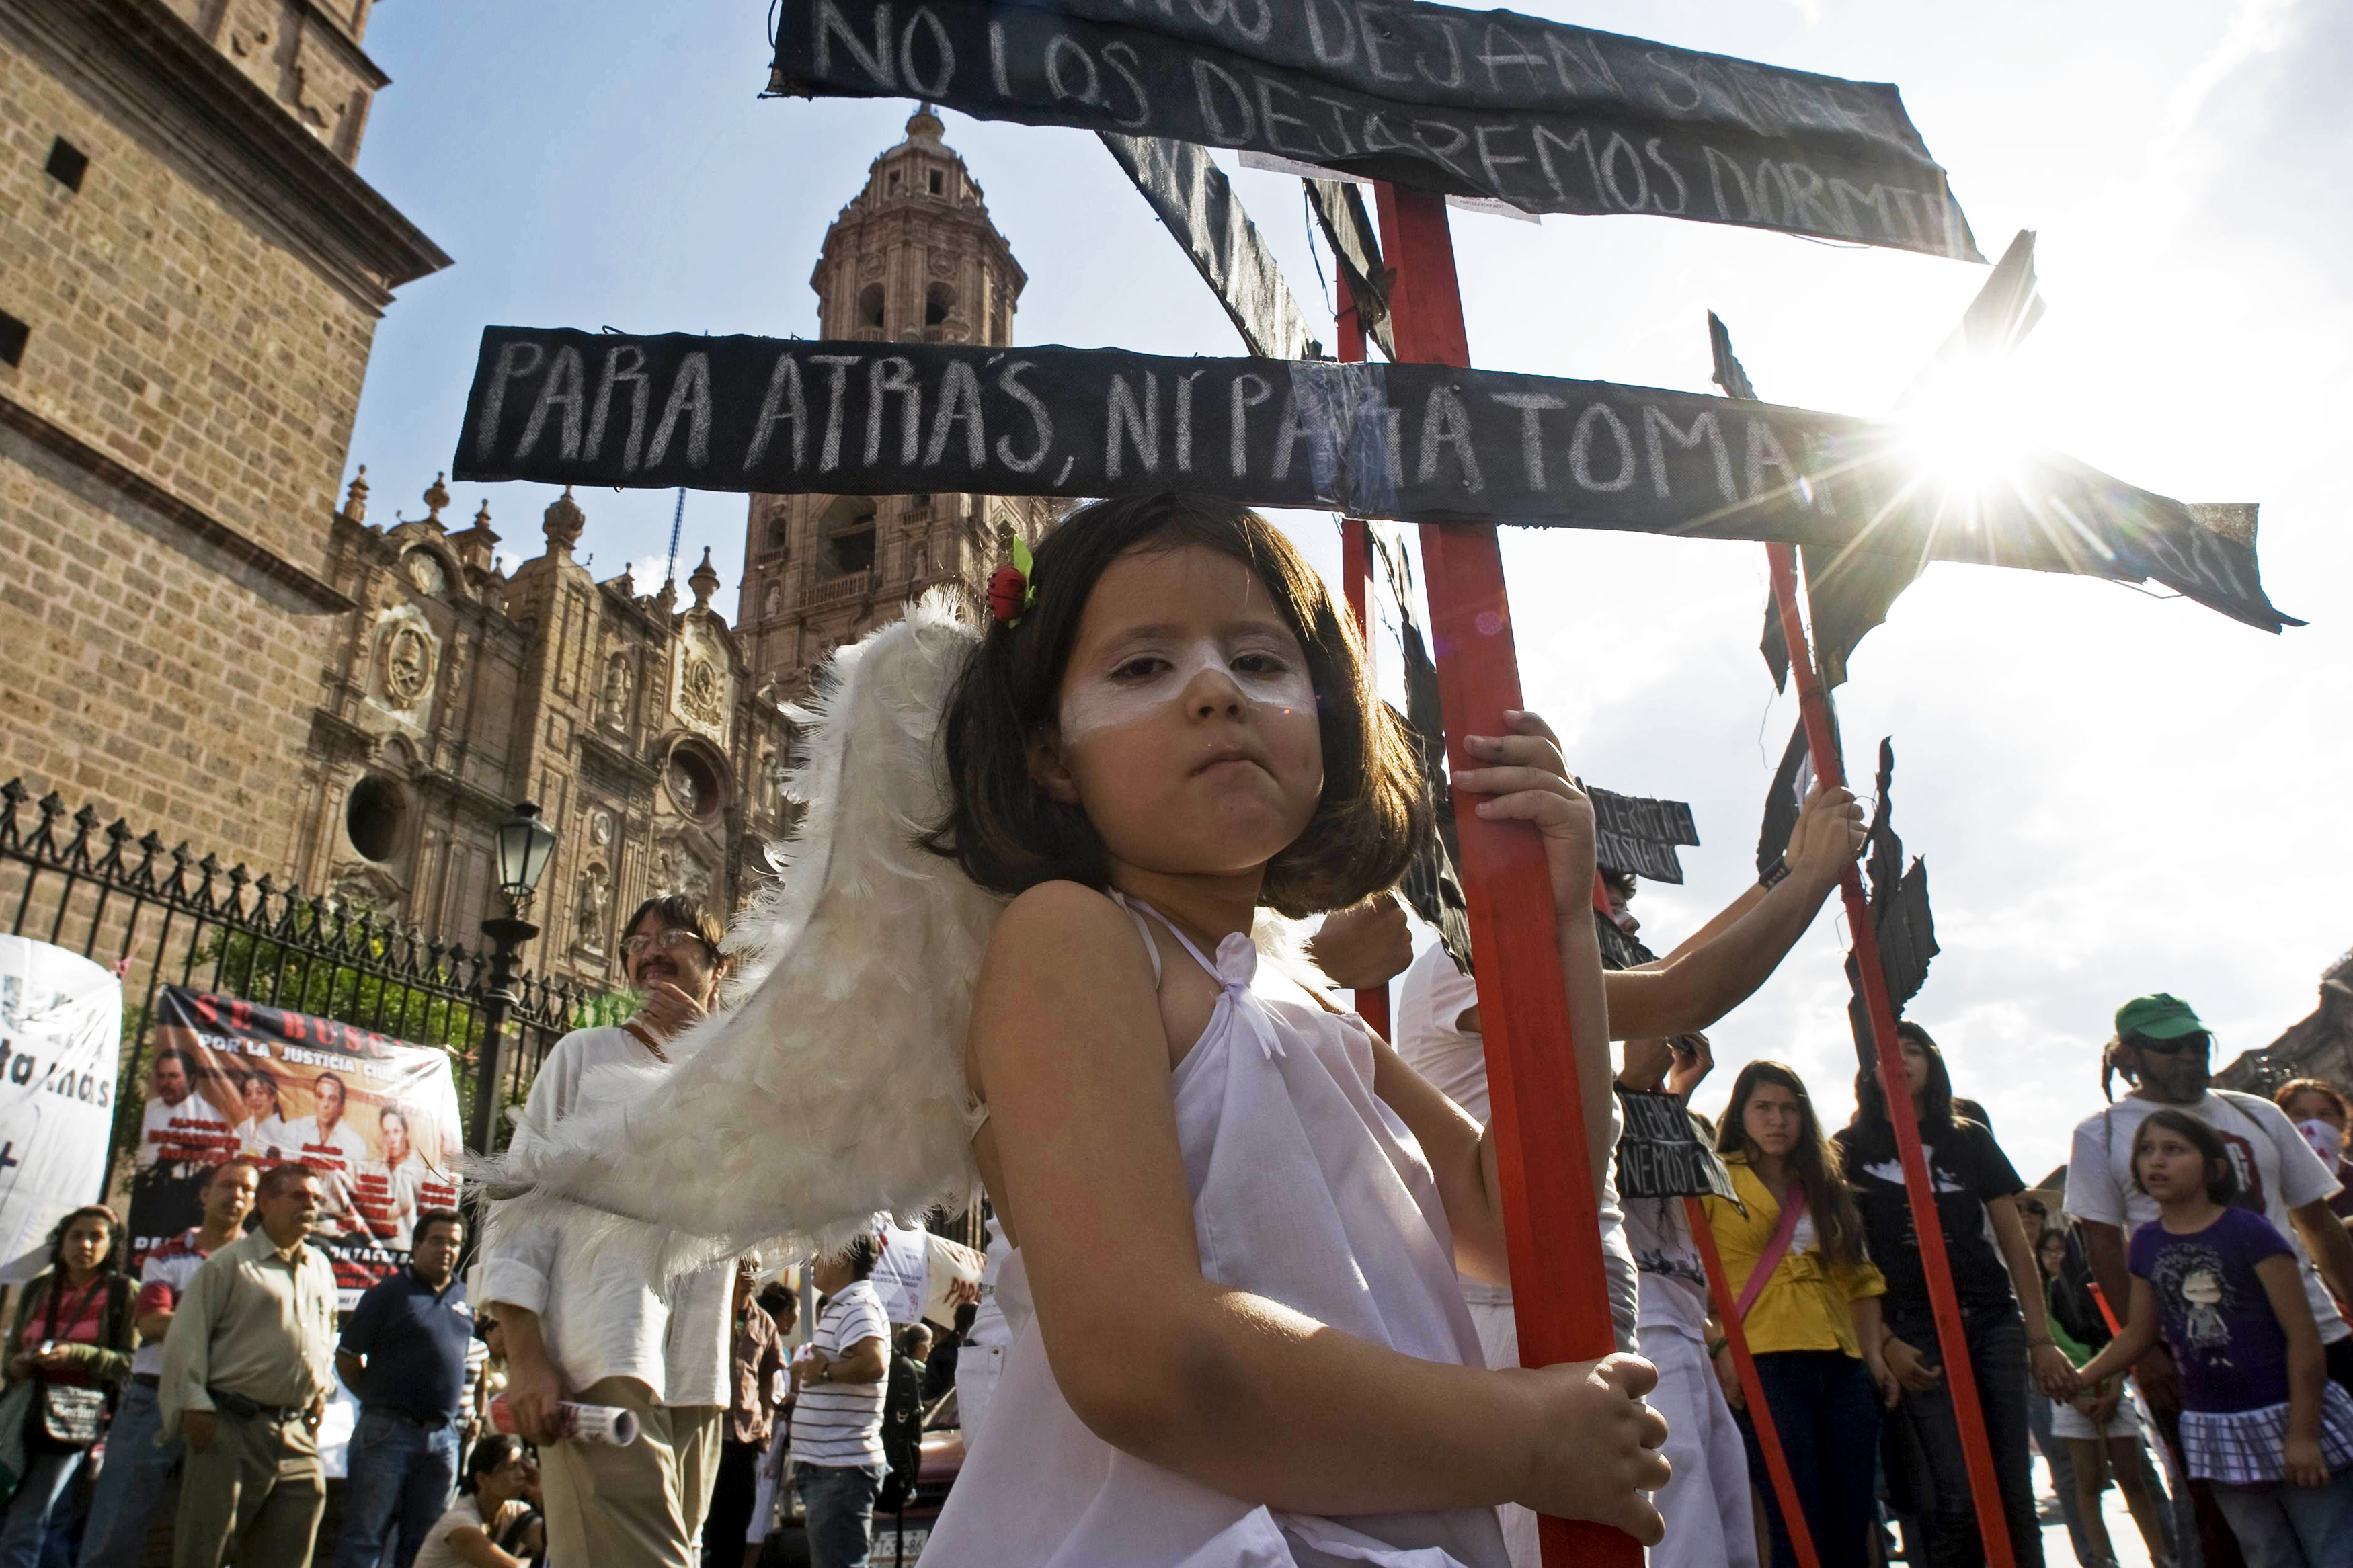 "Mexican children dress as an angel take part at the anti-violence rally ""Relief for Peace with Justice and Dignity"" caravan in the City of Morelia on June 4, 2011. The caravan - convened by the Mexican writer and poet Javier Sicilia to denounce the violence of crime in Mexico and to demand changes in the drug strategy - started in Cuernavaca and will cover 3,000 kilometers to finish in the border city of Ciudad Juárez. AFP PHOTO/ Porfirio GONZALEZ (Photo credit should read PORFIRIO GONZALEZ/AFP/Getty Images)"